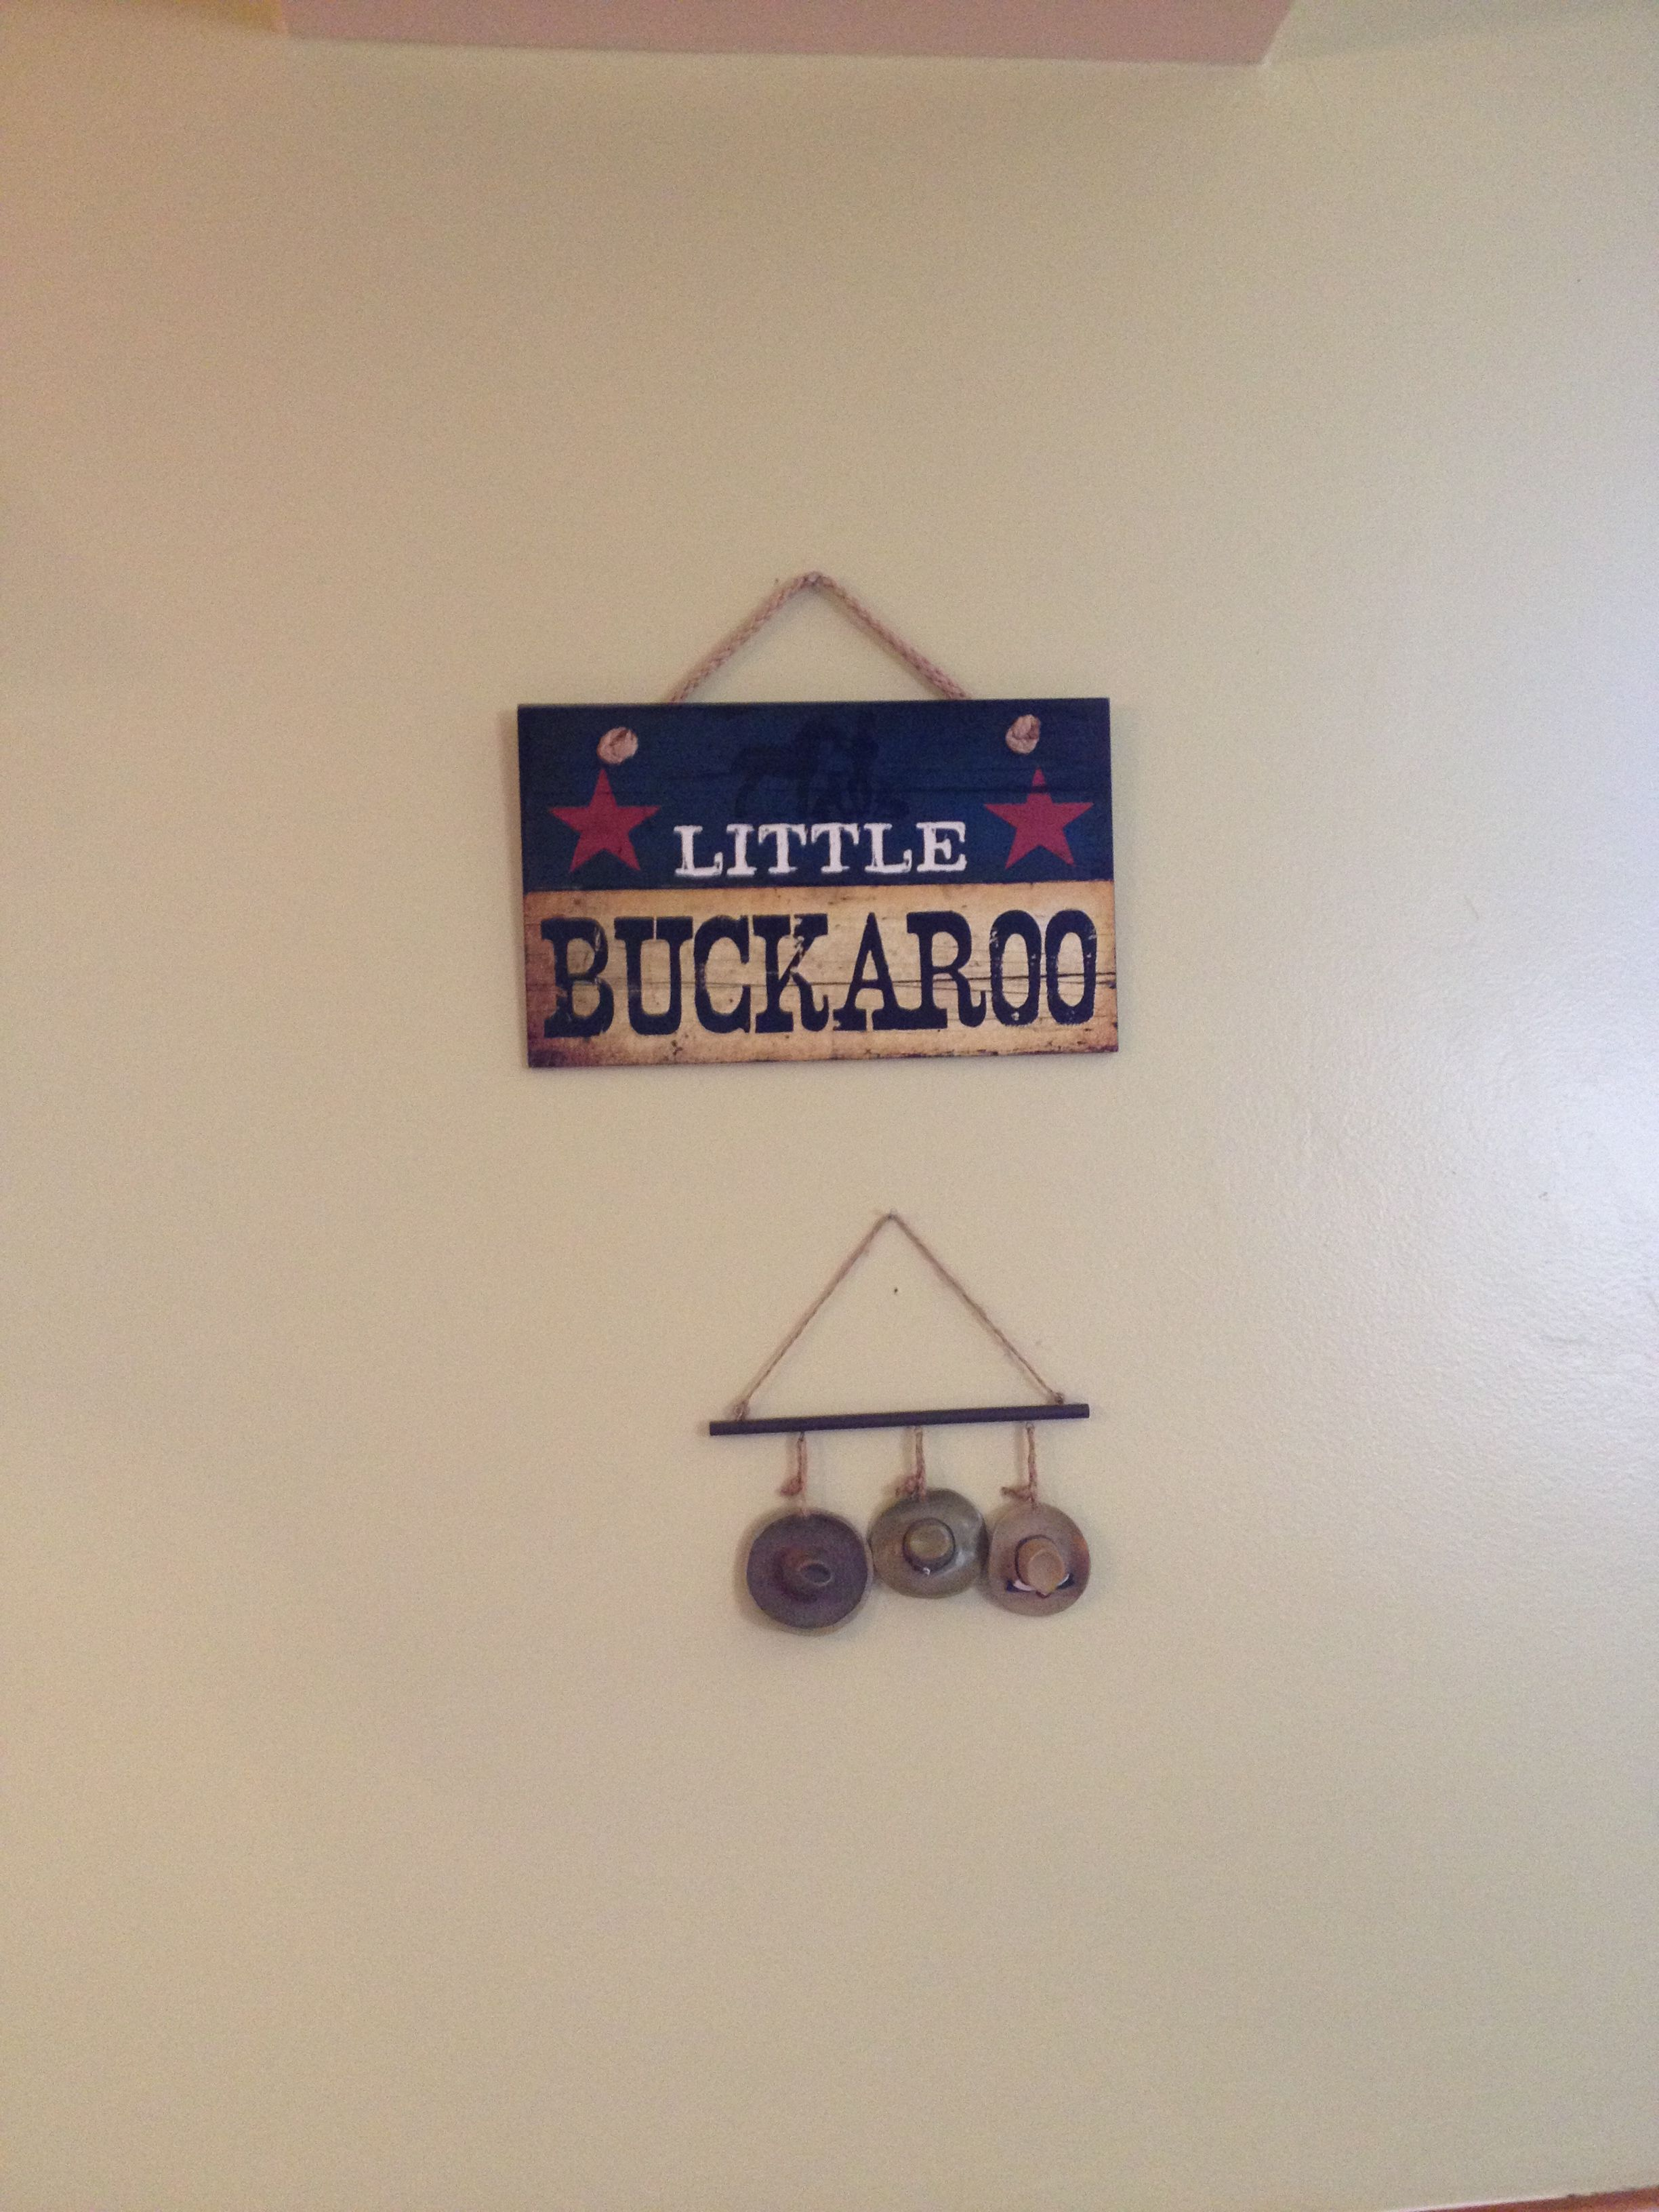 Little buckaroo / cowboy themed baby shower got the sign off of Amazon